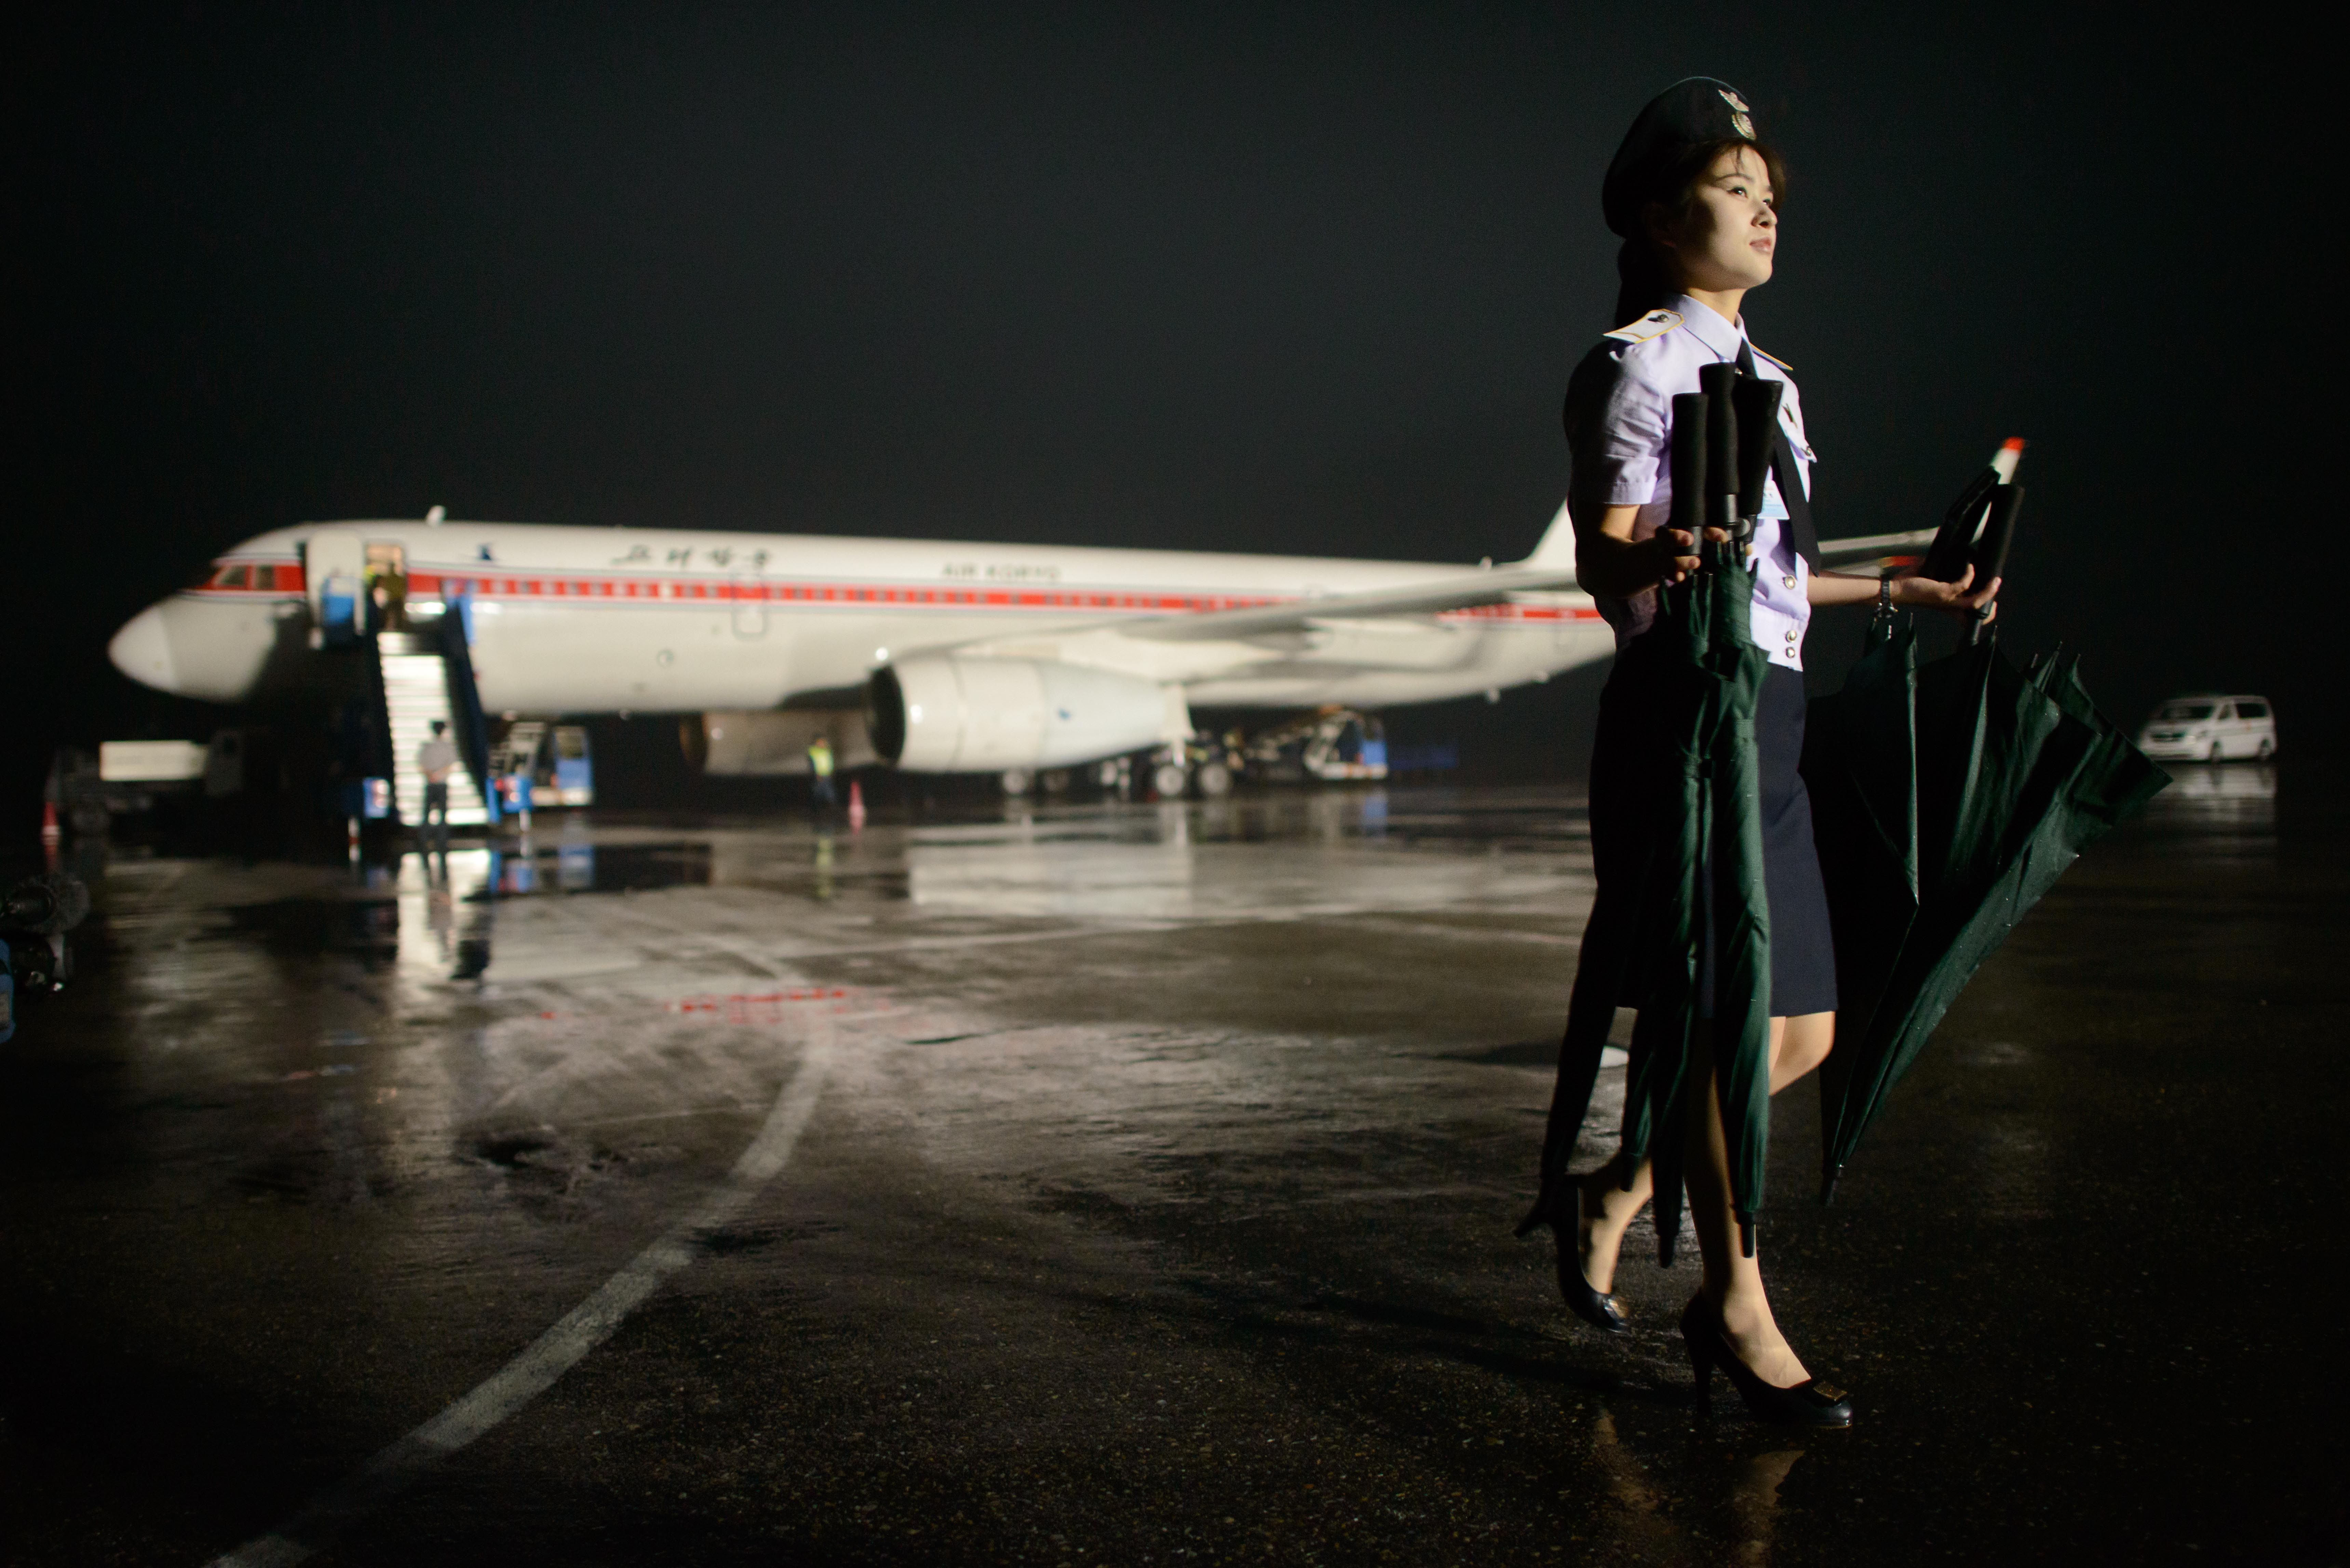 In a photo taken on July 24, 2013 a North Korean airport staff member carries umbrellas before an Air Koryo aircraft in Pyongyang.